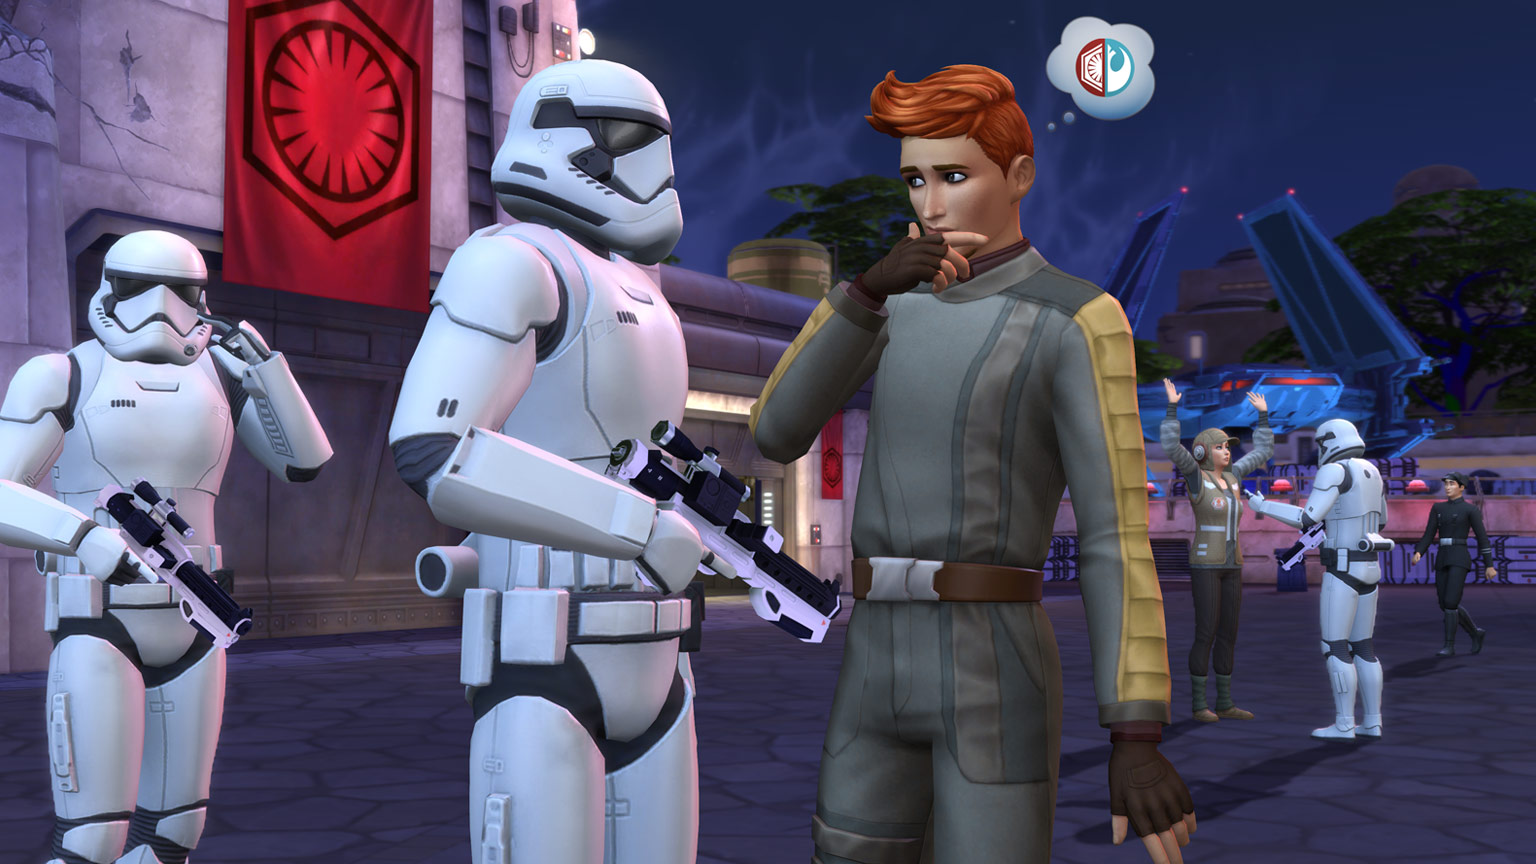 A scene from The Sims 4 Star Wars: Journey to Batuu